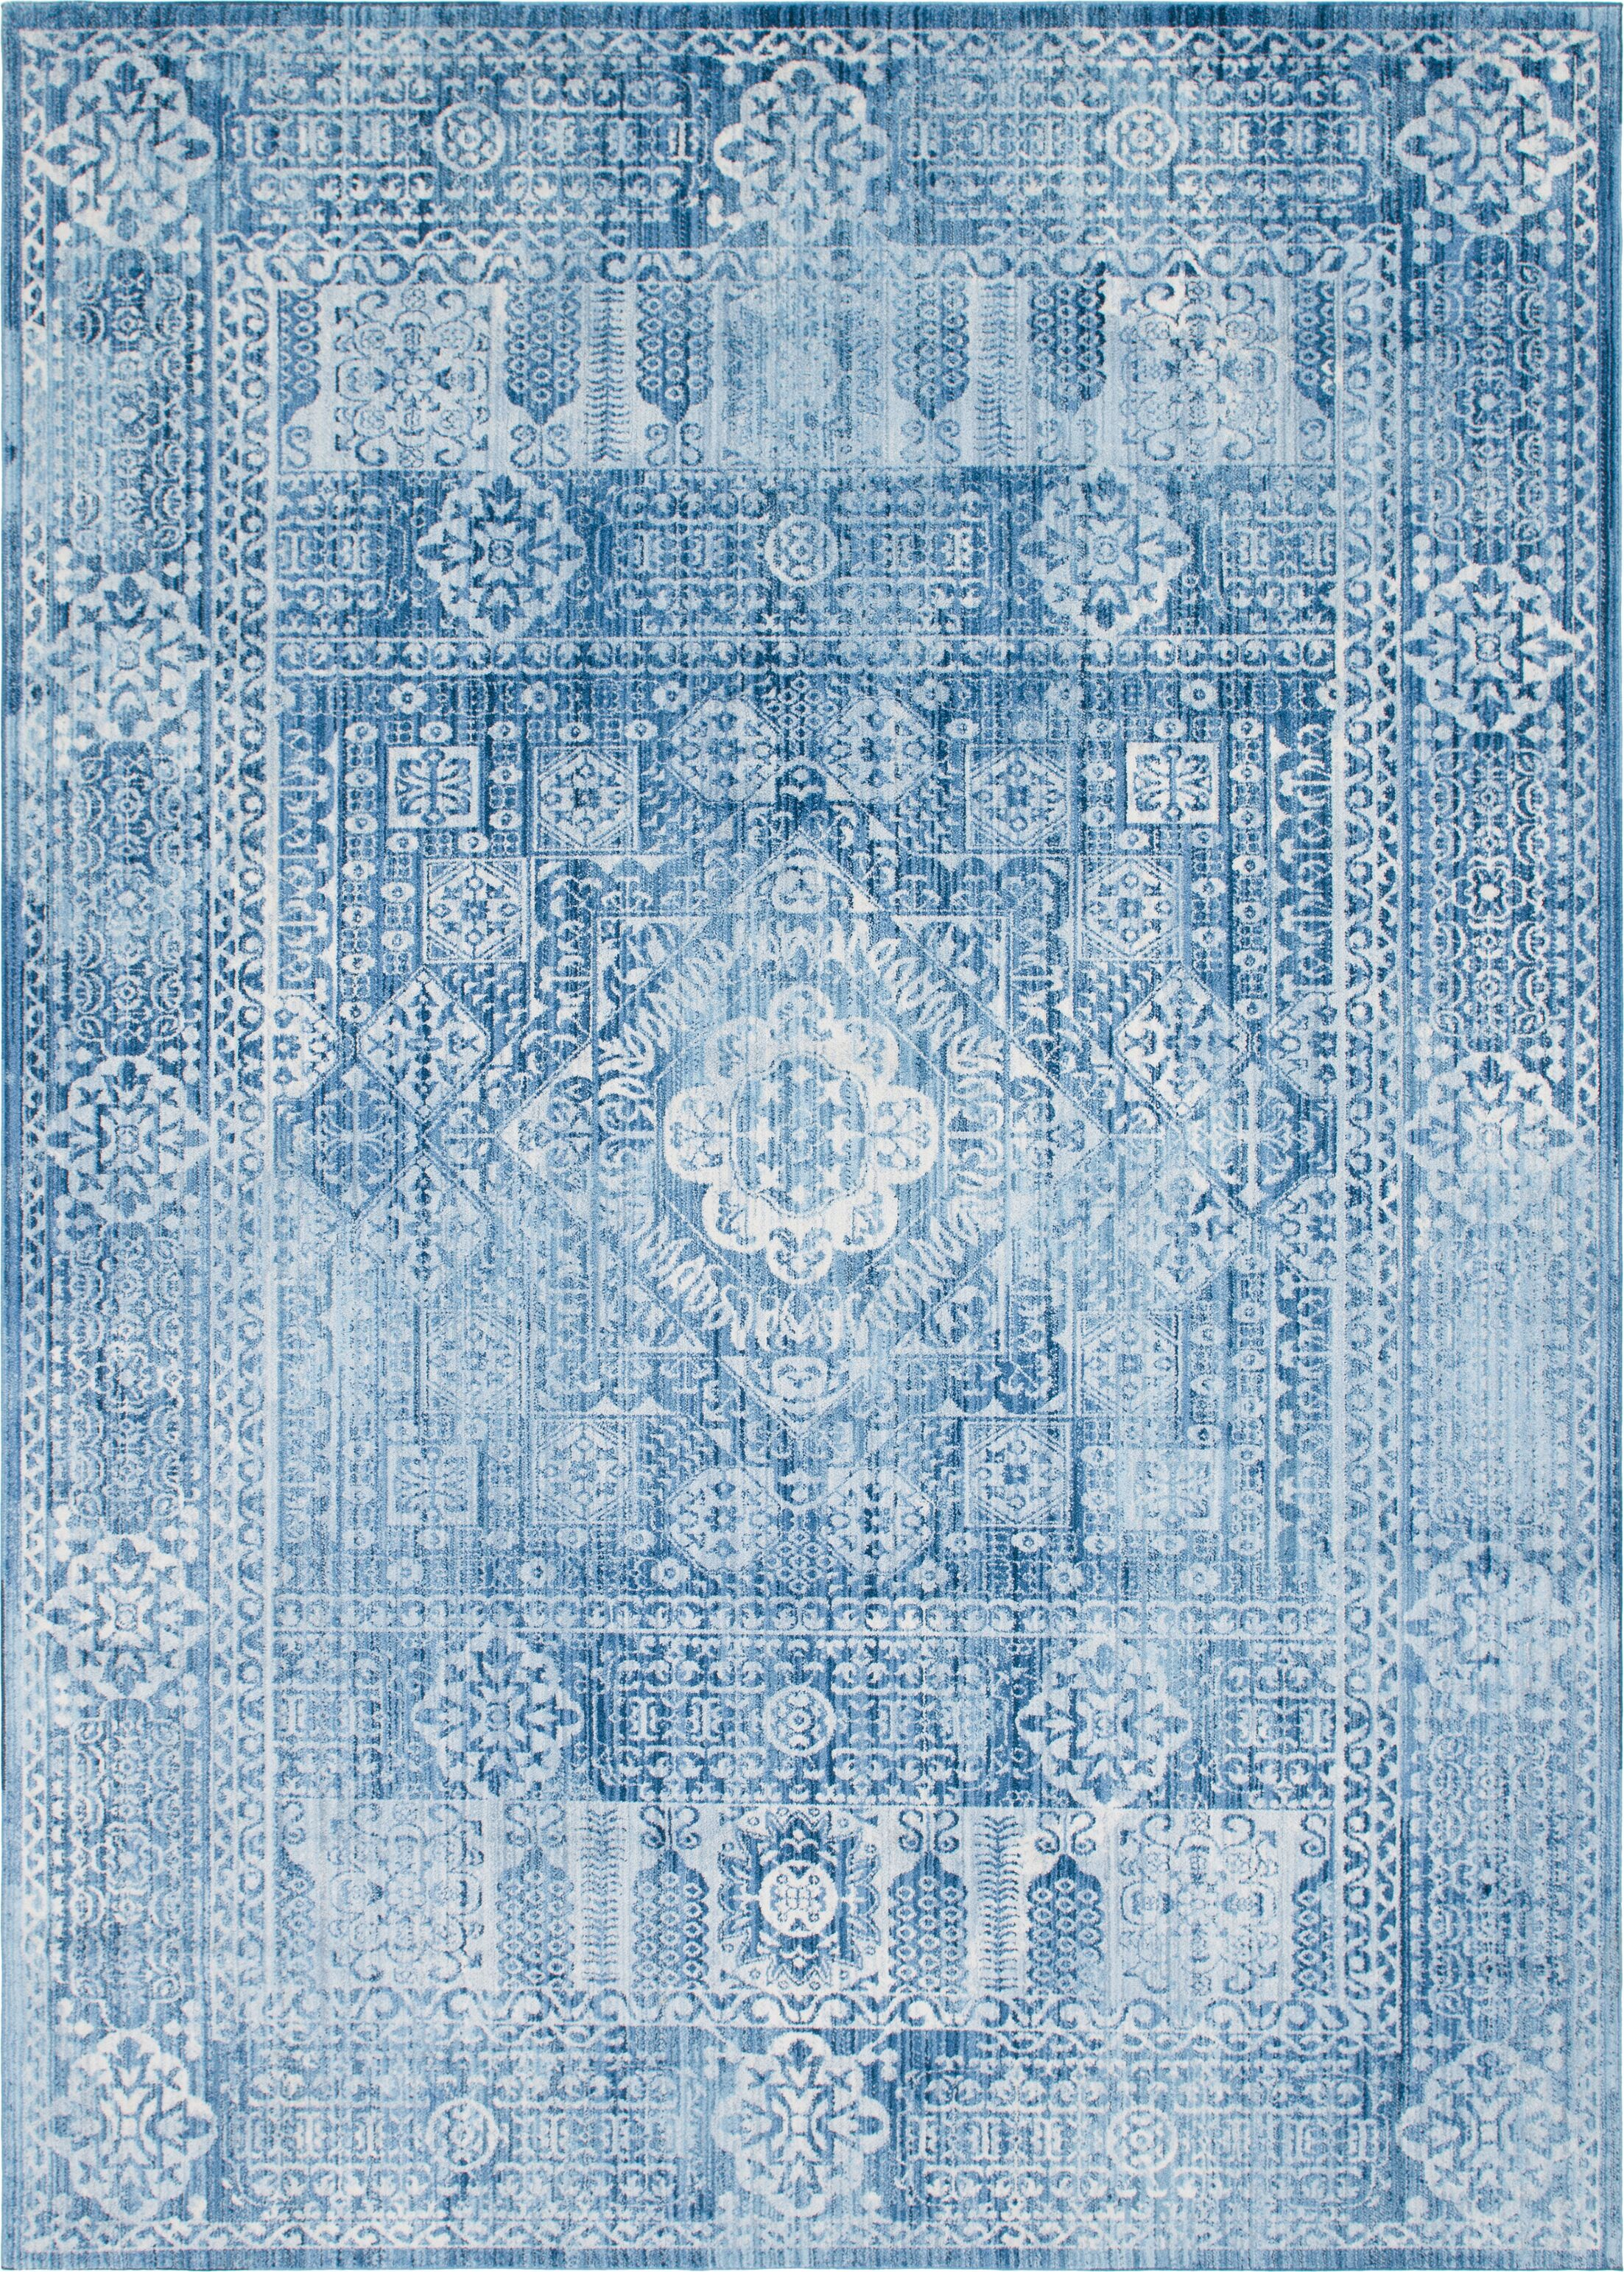 Gomez Blue Area Rug Rug Size: Rectangle 8' x 10'